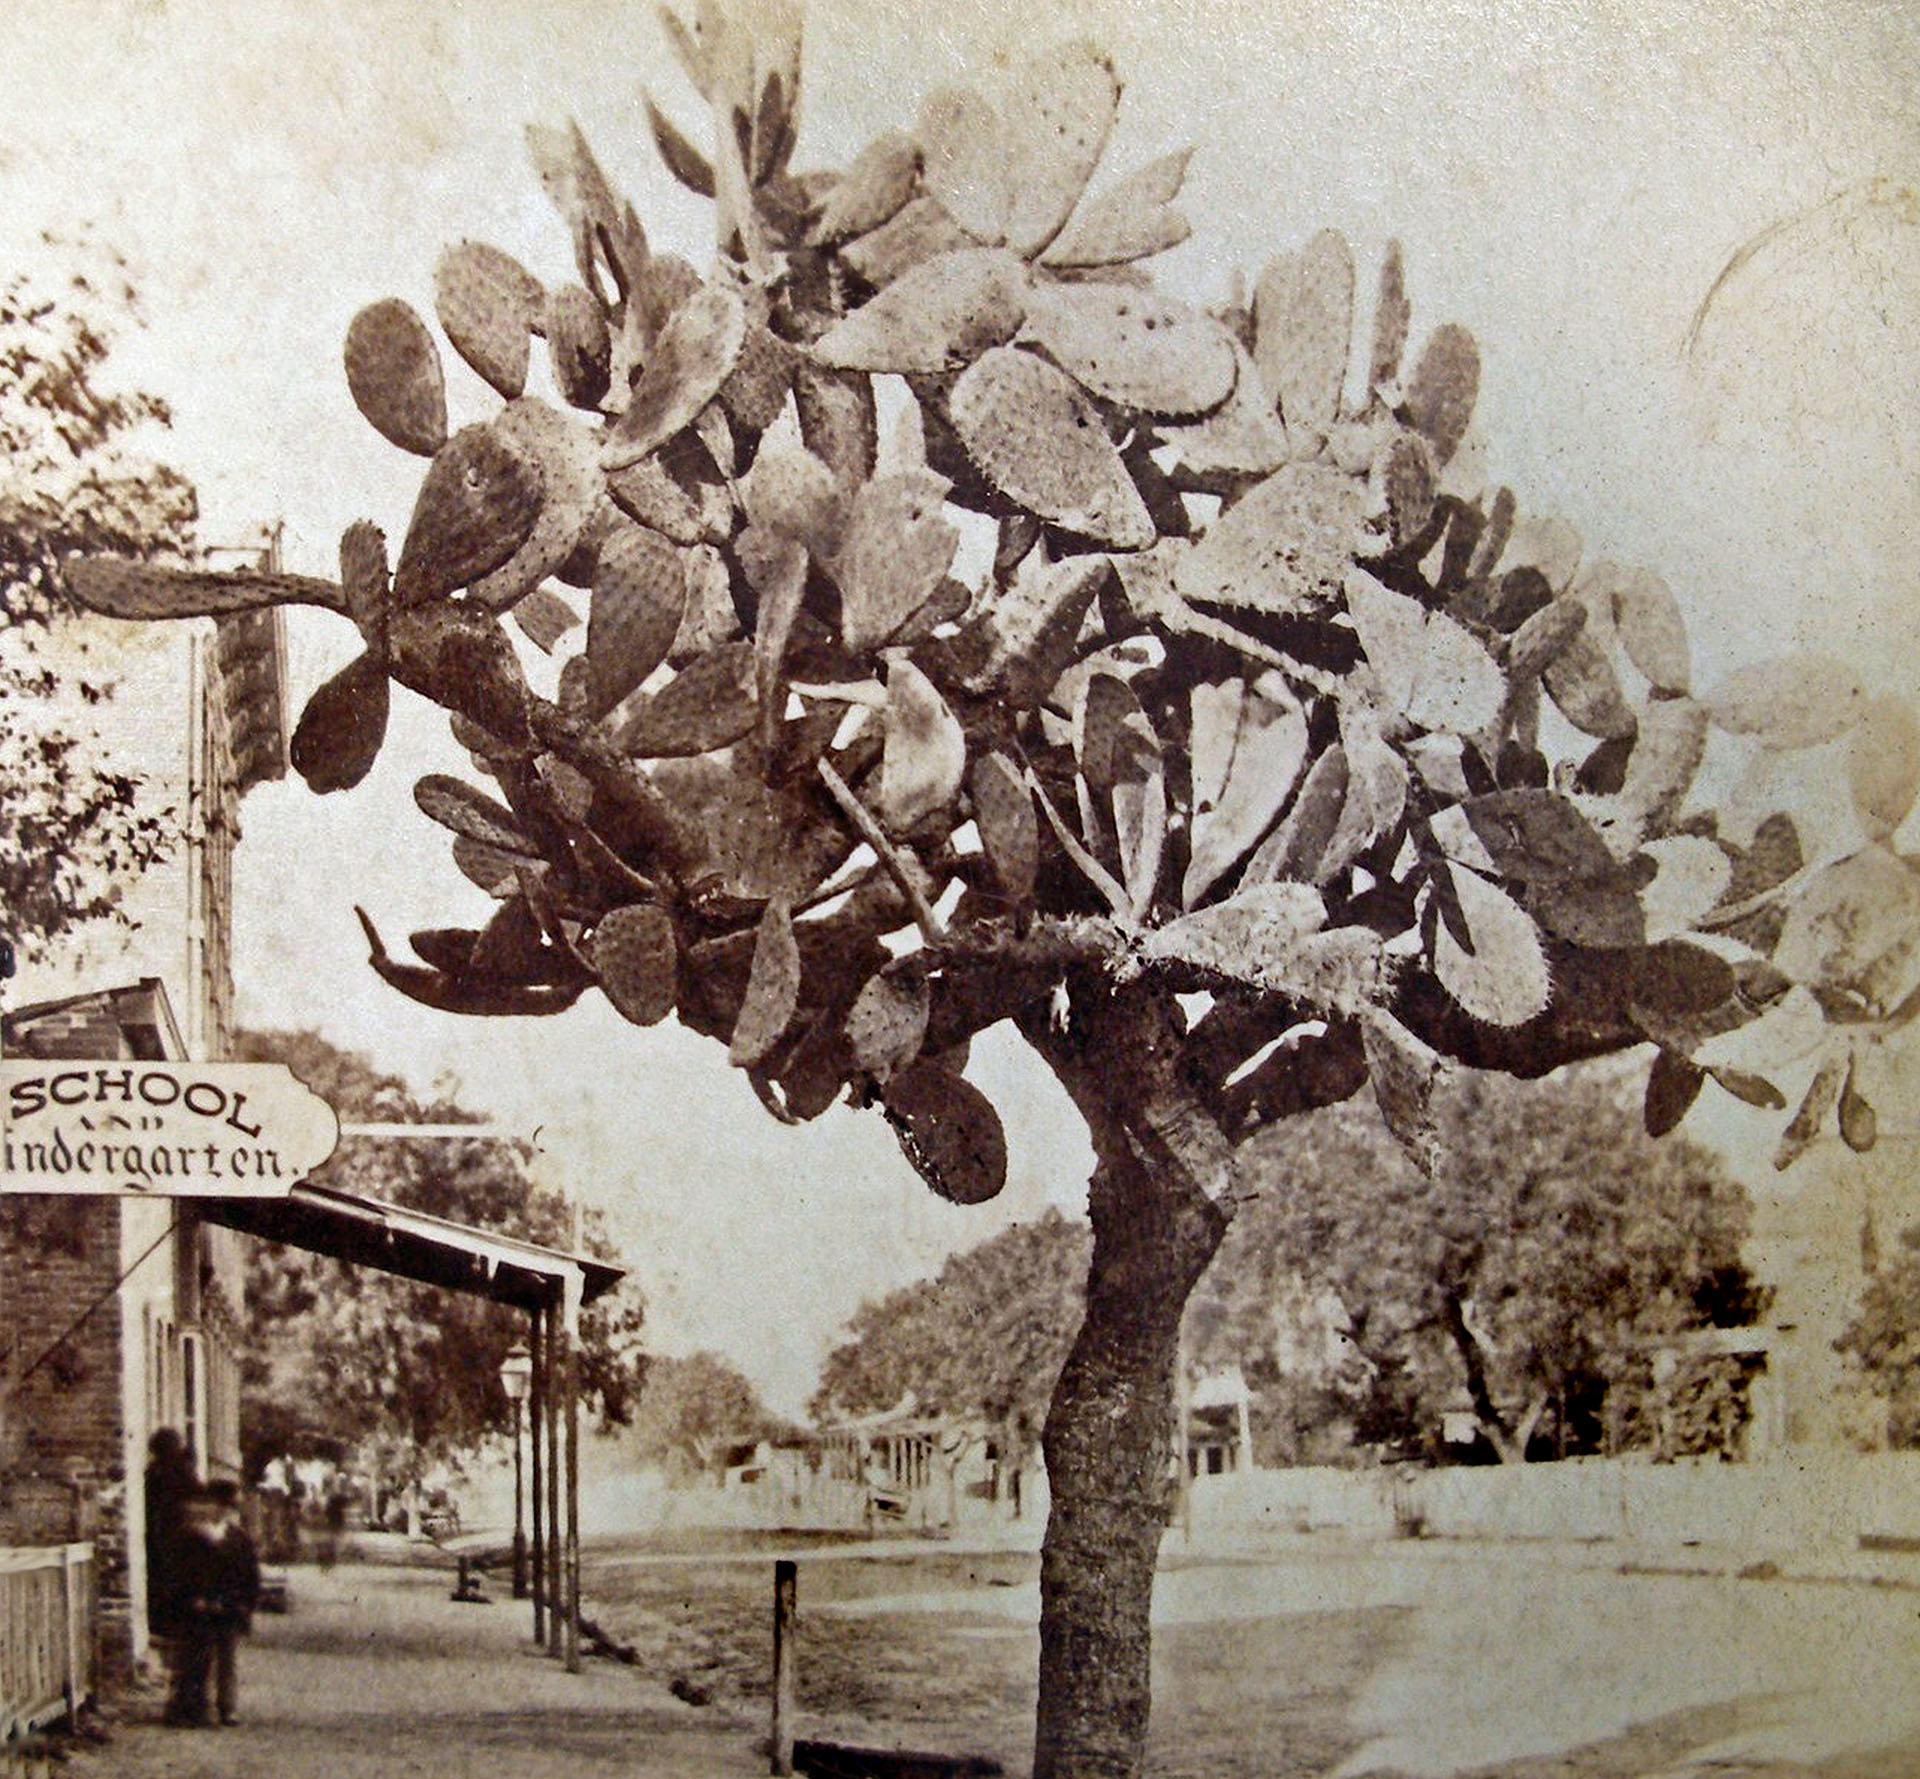 Kindergarten, ca. 1878. A cactus hedge fenced the Garden of Paradise on Main Street. When it briefly became a school, only one prickly-pear cactus remained. Photograph courtesy of California Historical Society Collection, USC Libraries